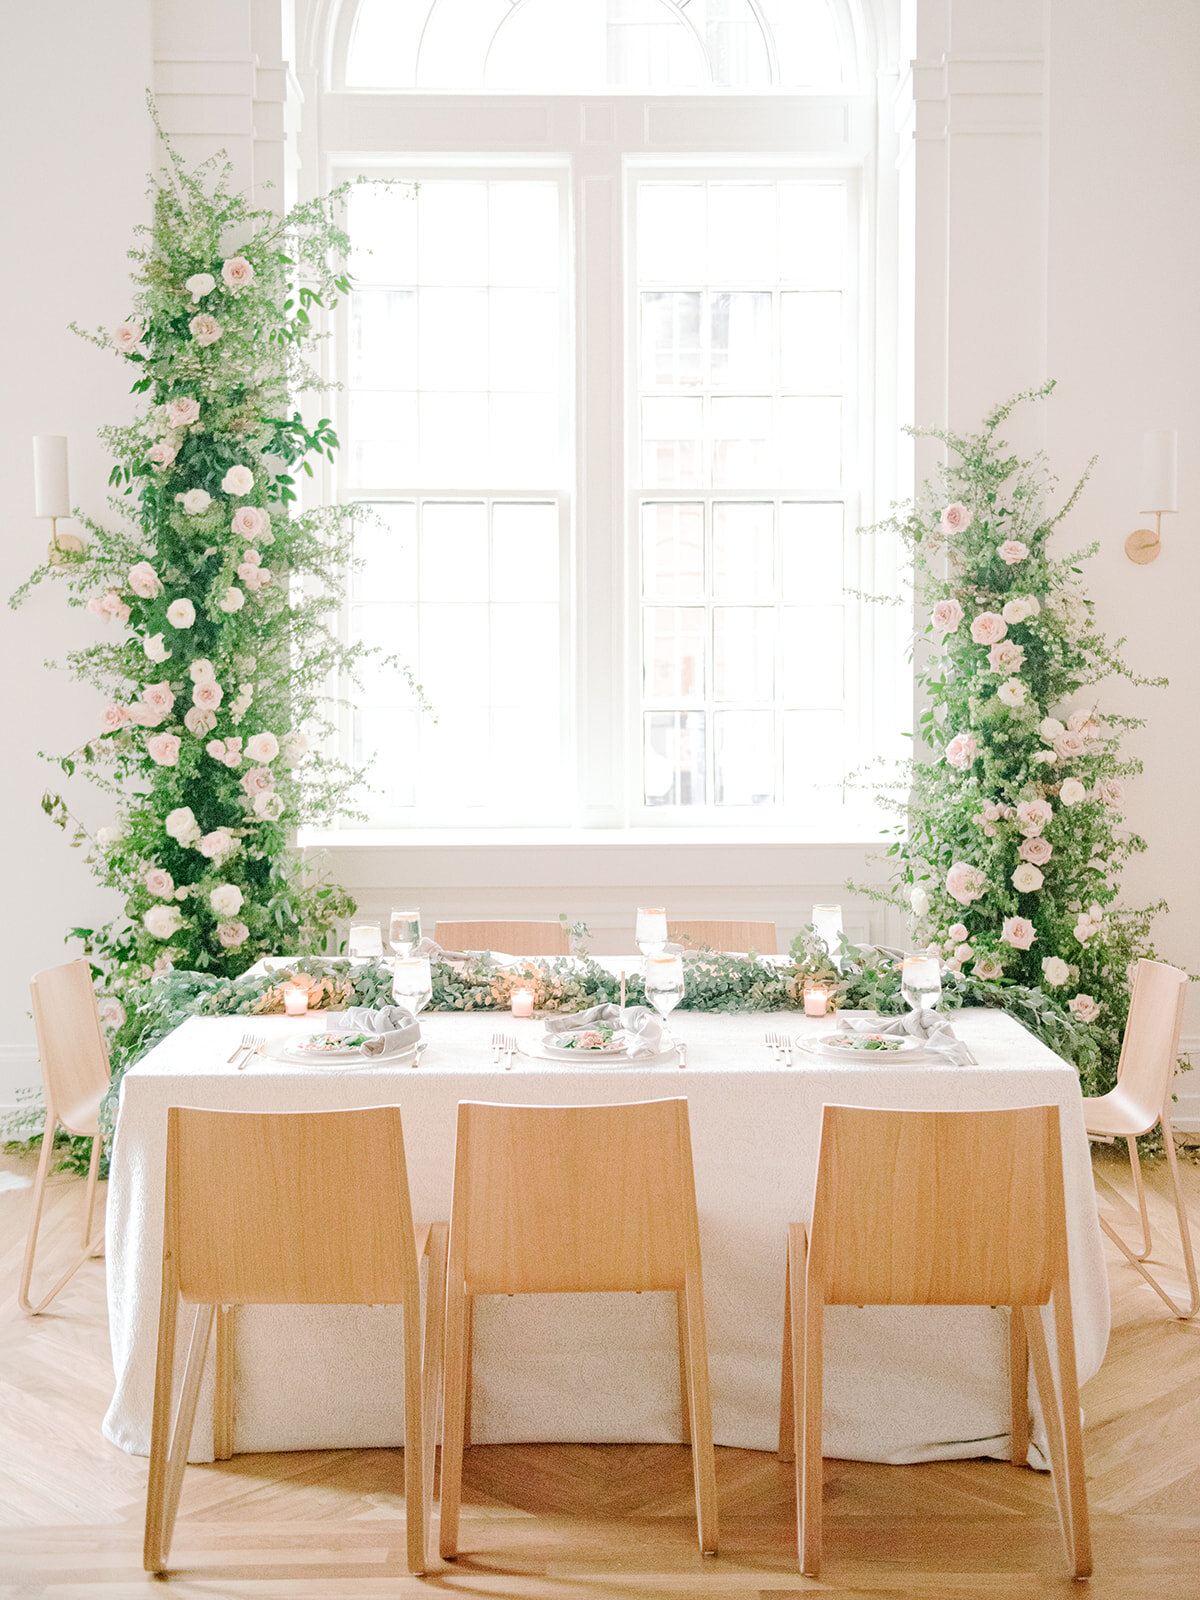 Sweetheart table with asymmetrical floral installation growing up either side of the windows in the Noelle. Nashville Wedding Florist.